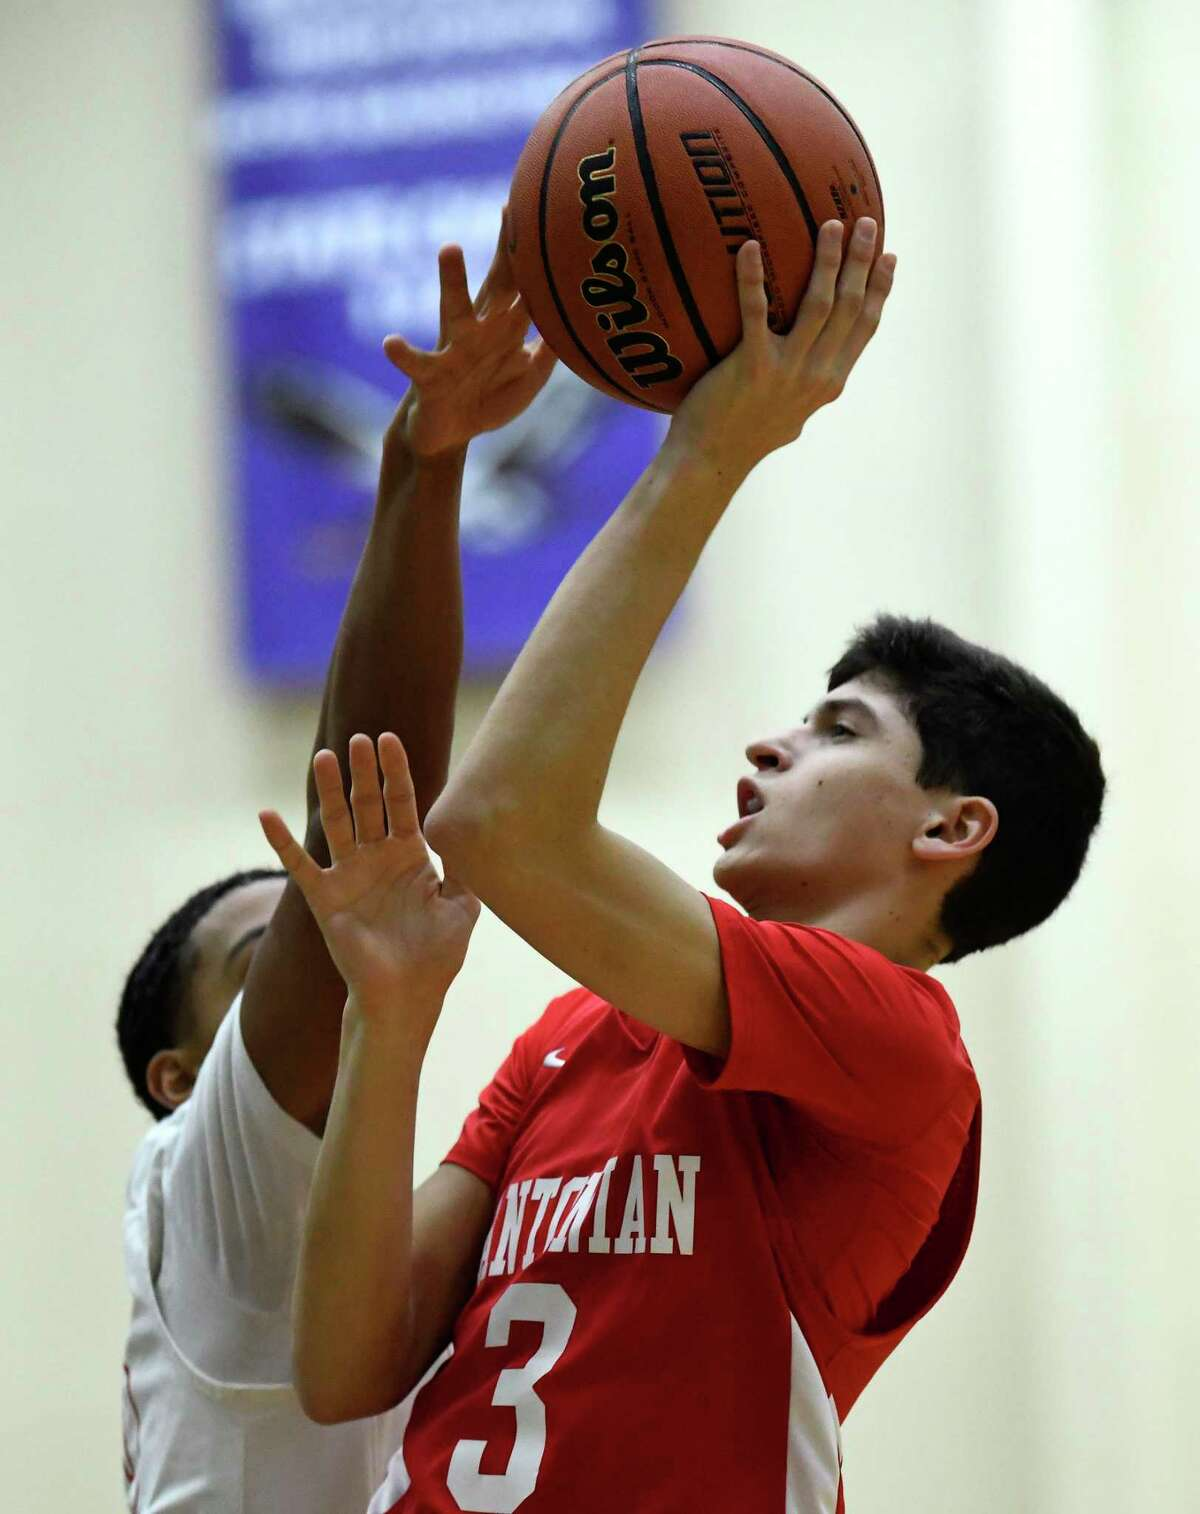 Gavino Ramos of Antonian shoots during the San Antonio Independent School District boys basketball tournament at the Alamo Convocation Center on Friday, Dec. 7, 2018.